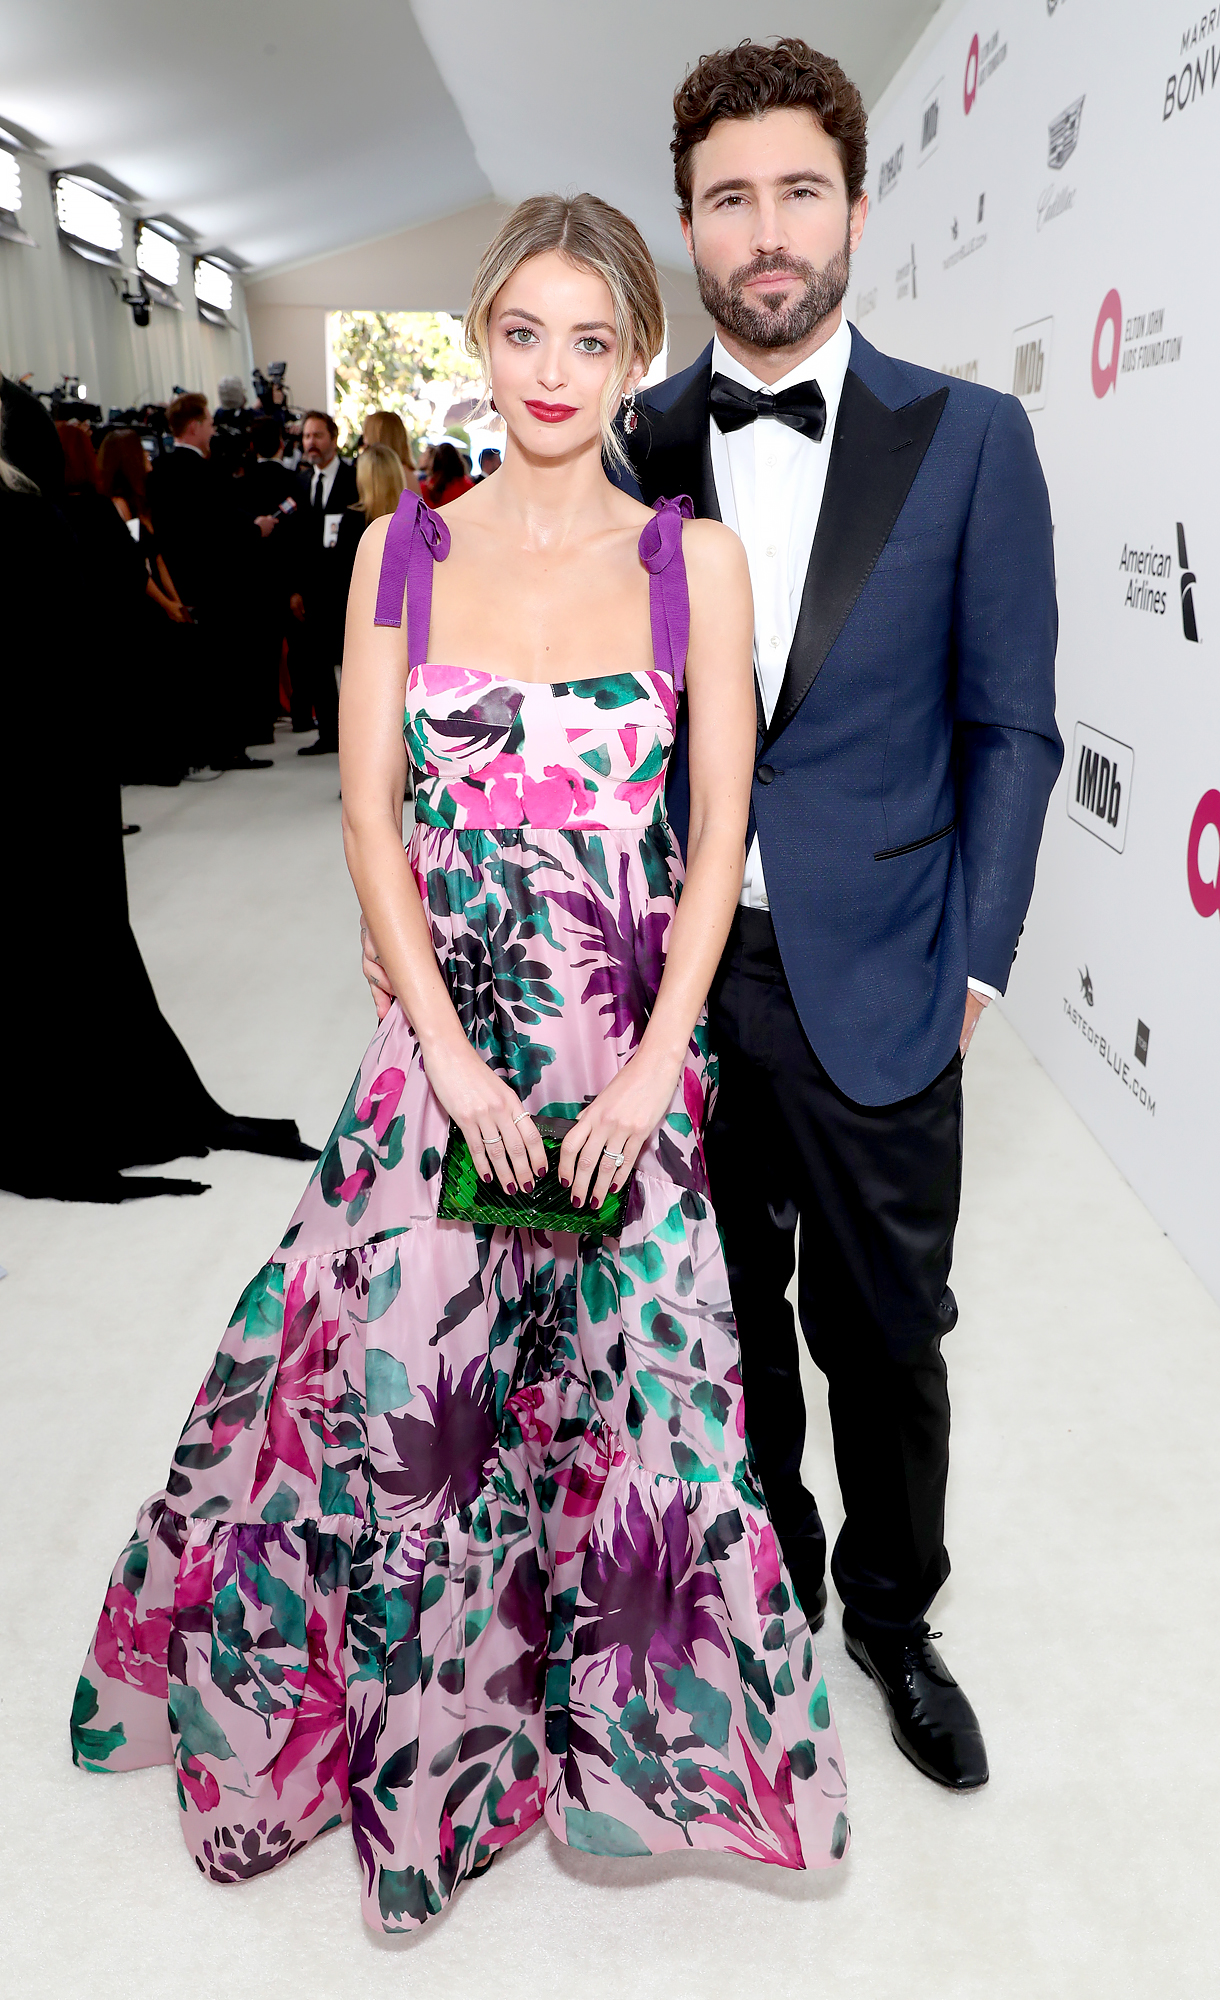 Kaitlynn-Carter-Jenner-and-Brody-Jenner - Kaitlynn Carter Jenner and Brody Jenner attend the 27th annual Elton John AIDS Foundation Academy Awards Viewing Party sponsored by IMDb and Neuro Drinks celebrating EJAF and the 91st Academy Awards on February 24, 2019 in West Hollywood, California.